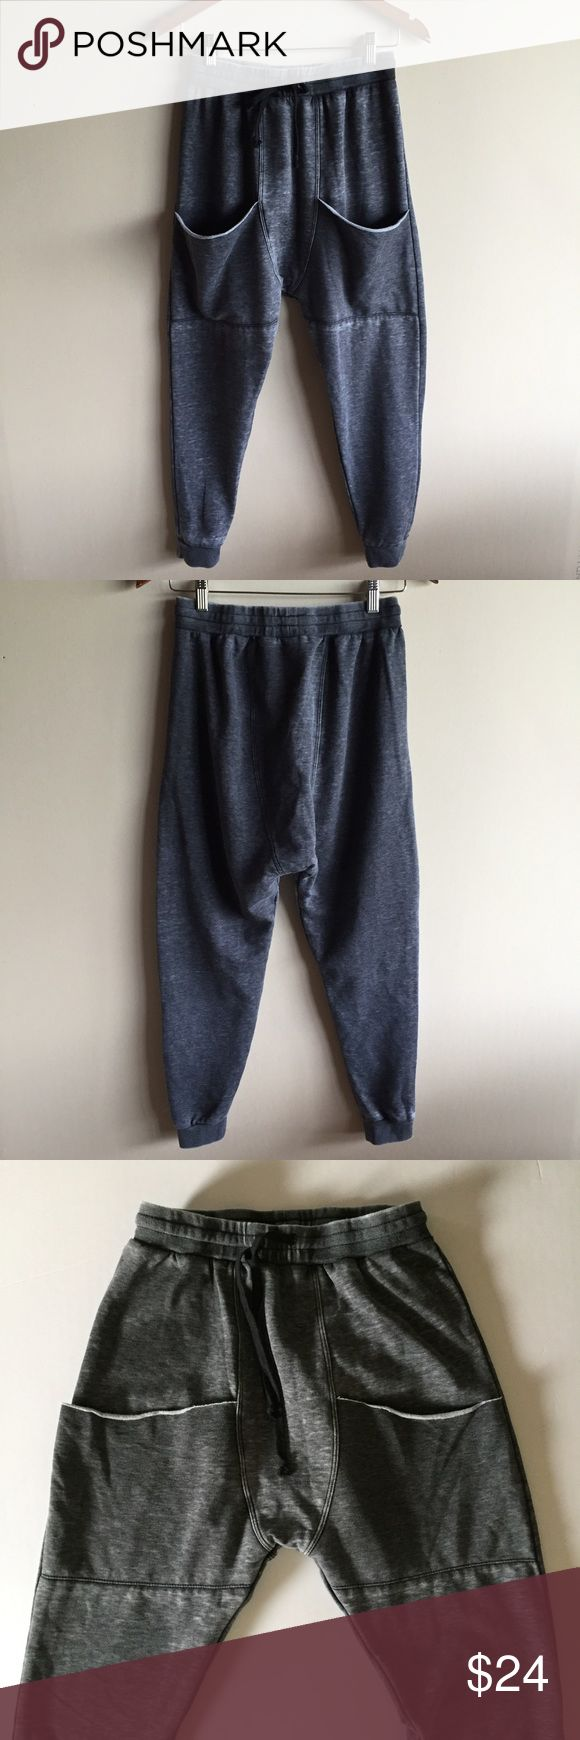 """Electric Yoga harem jogger pants Super cute and comfy harem sweatpants in grey. Drawstring waist and big front pockets. Great condition! 14"""" across waist, 16"""" rise, 25"""" inseam. Electric Yoga Pants Track Pants & Joggers"""